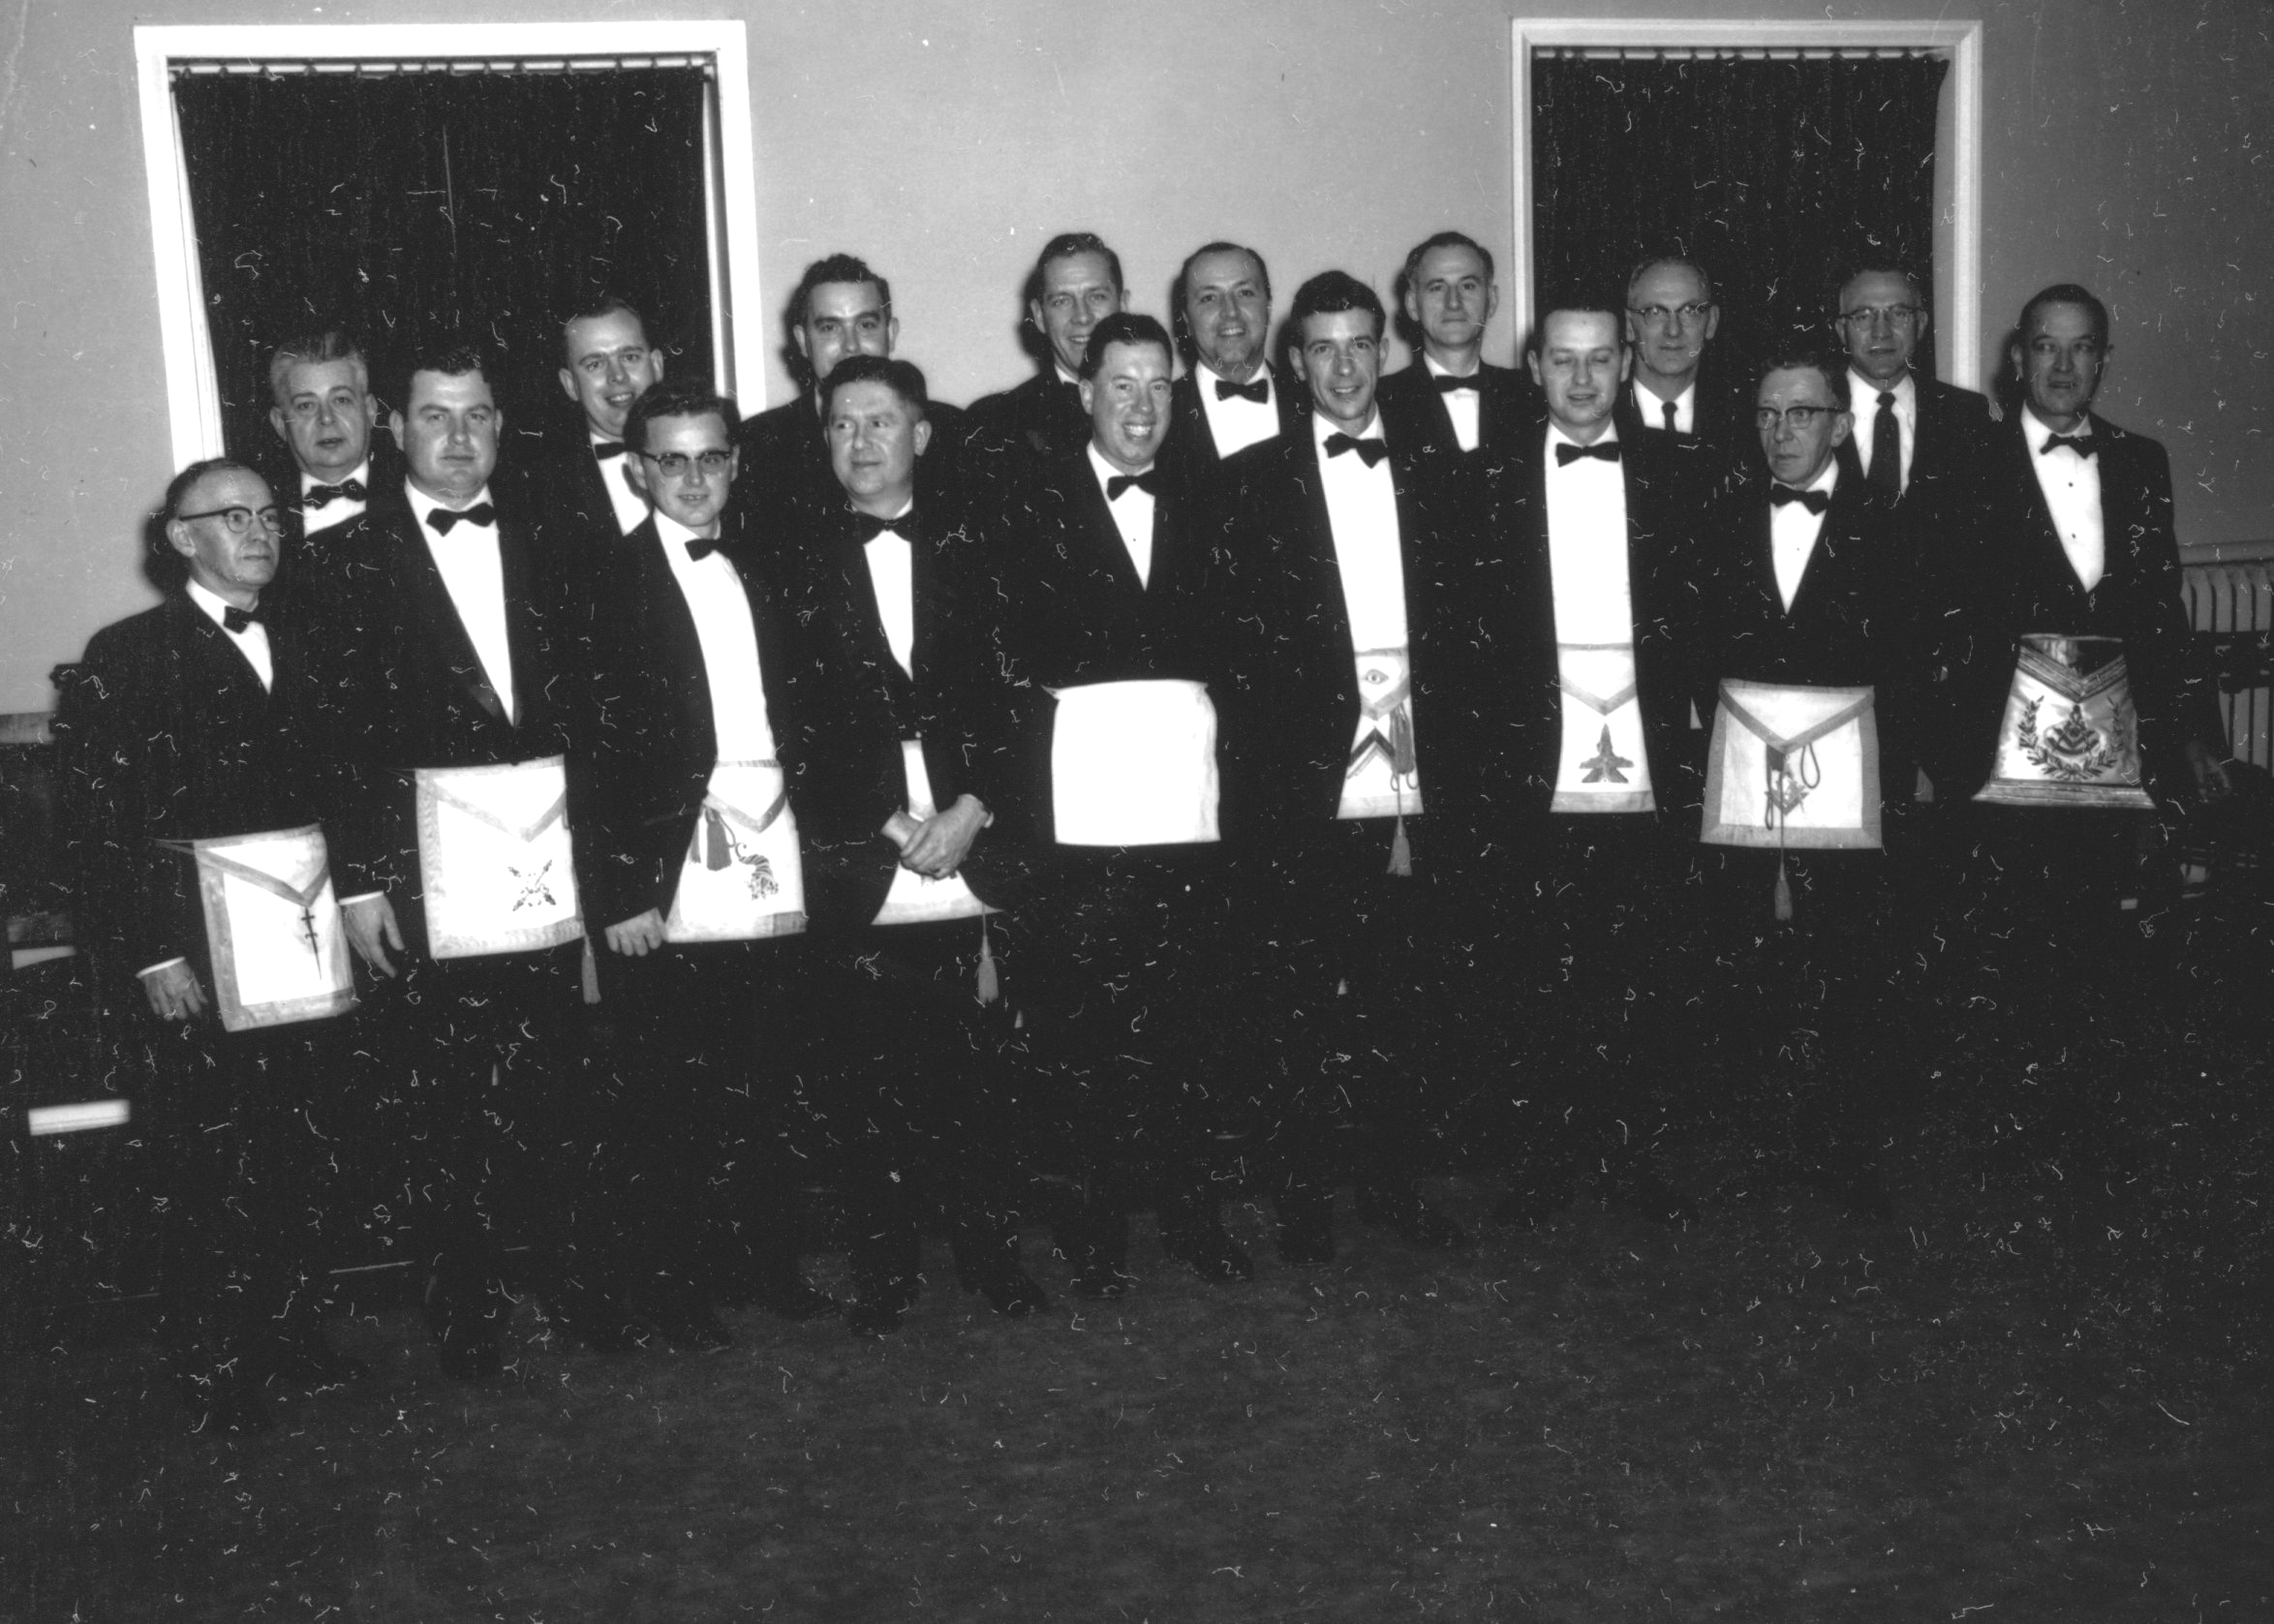 How Freemasonry Makes Men and Society Better This Most Benevolent Brotherhood Has Men of Good Character